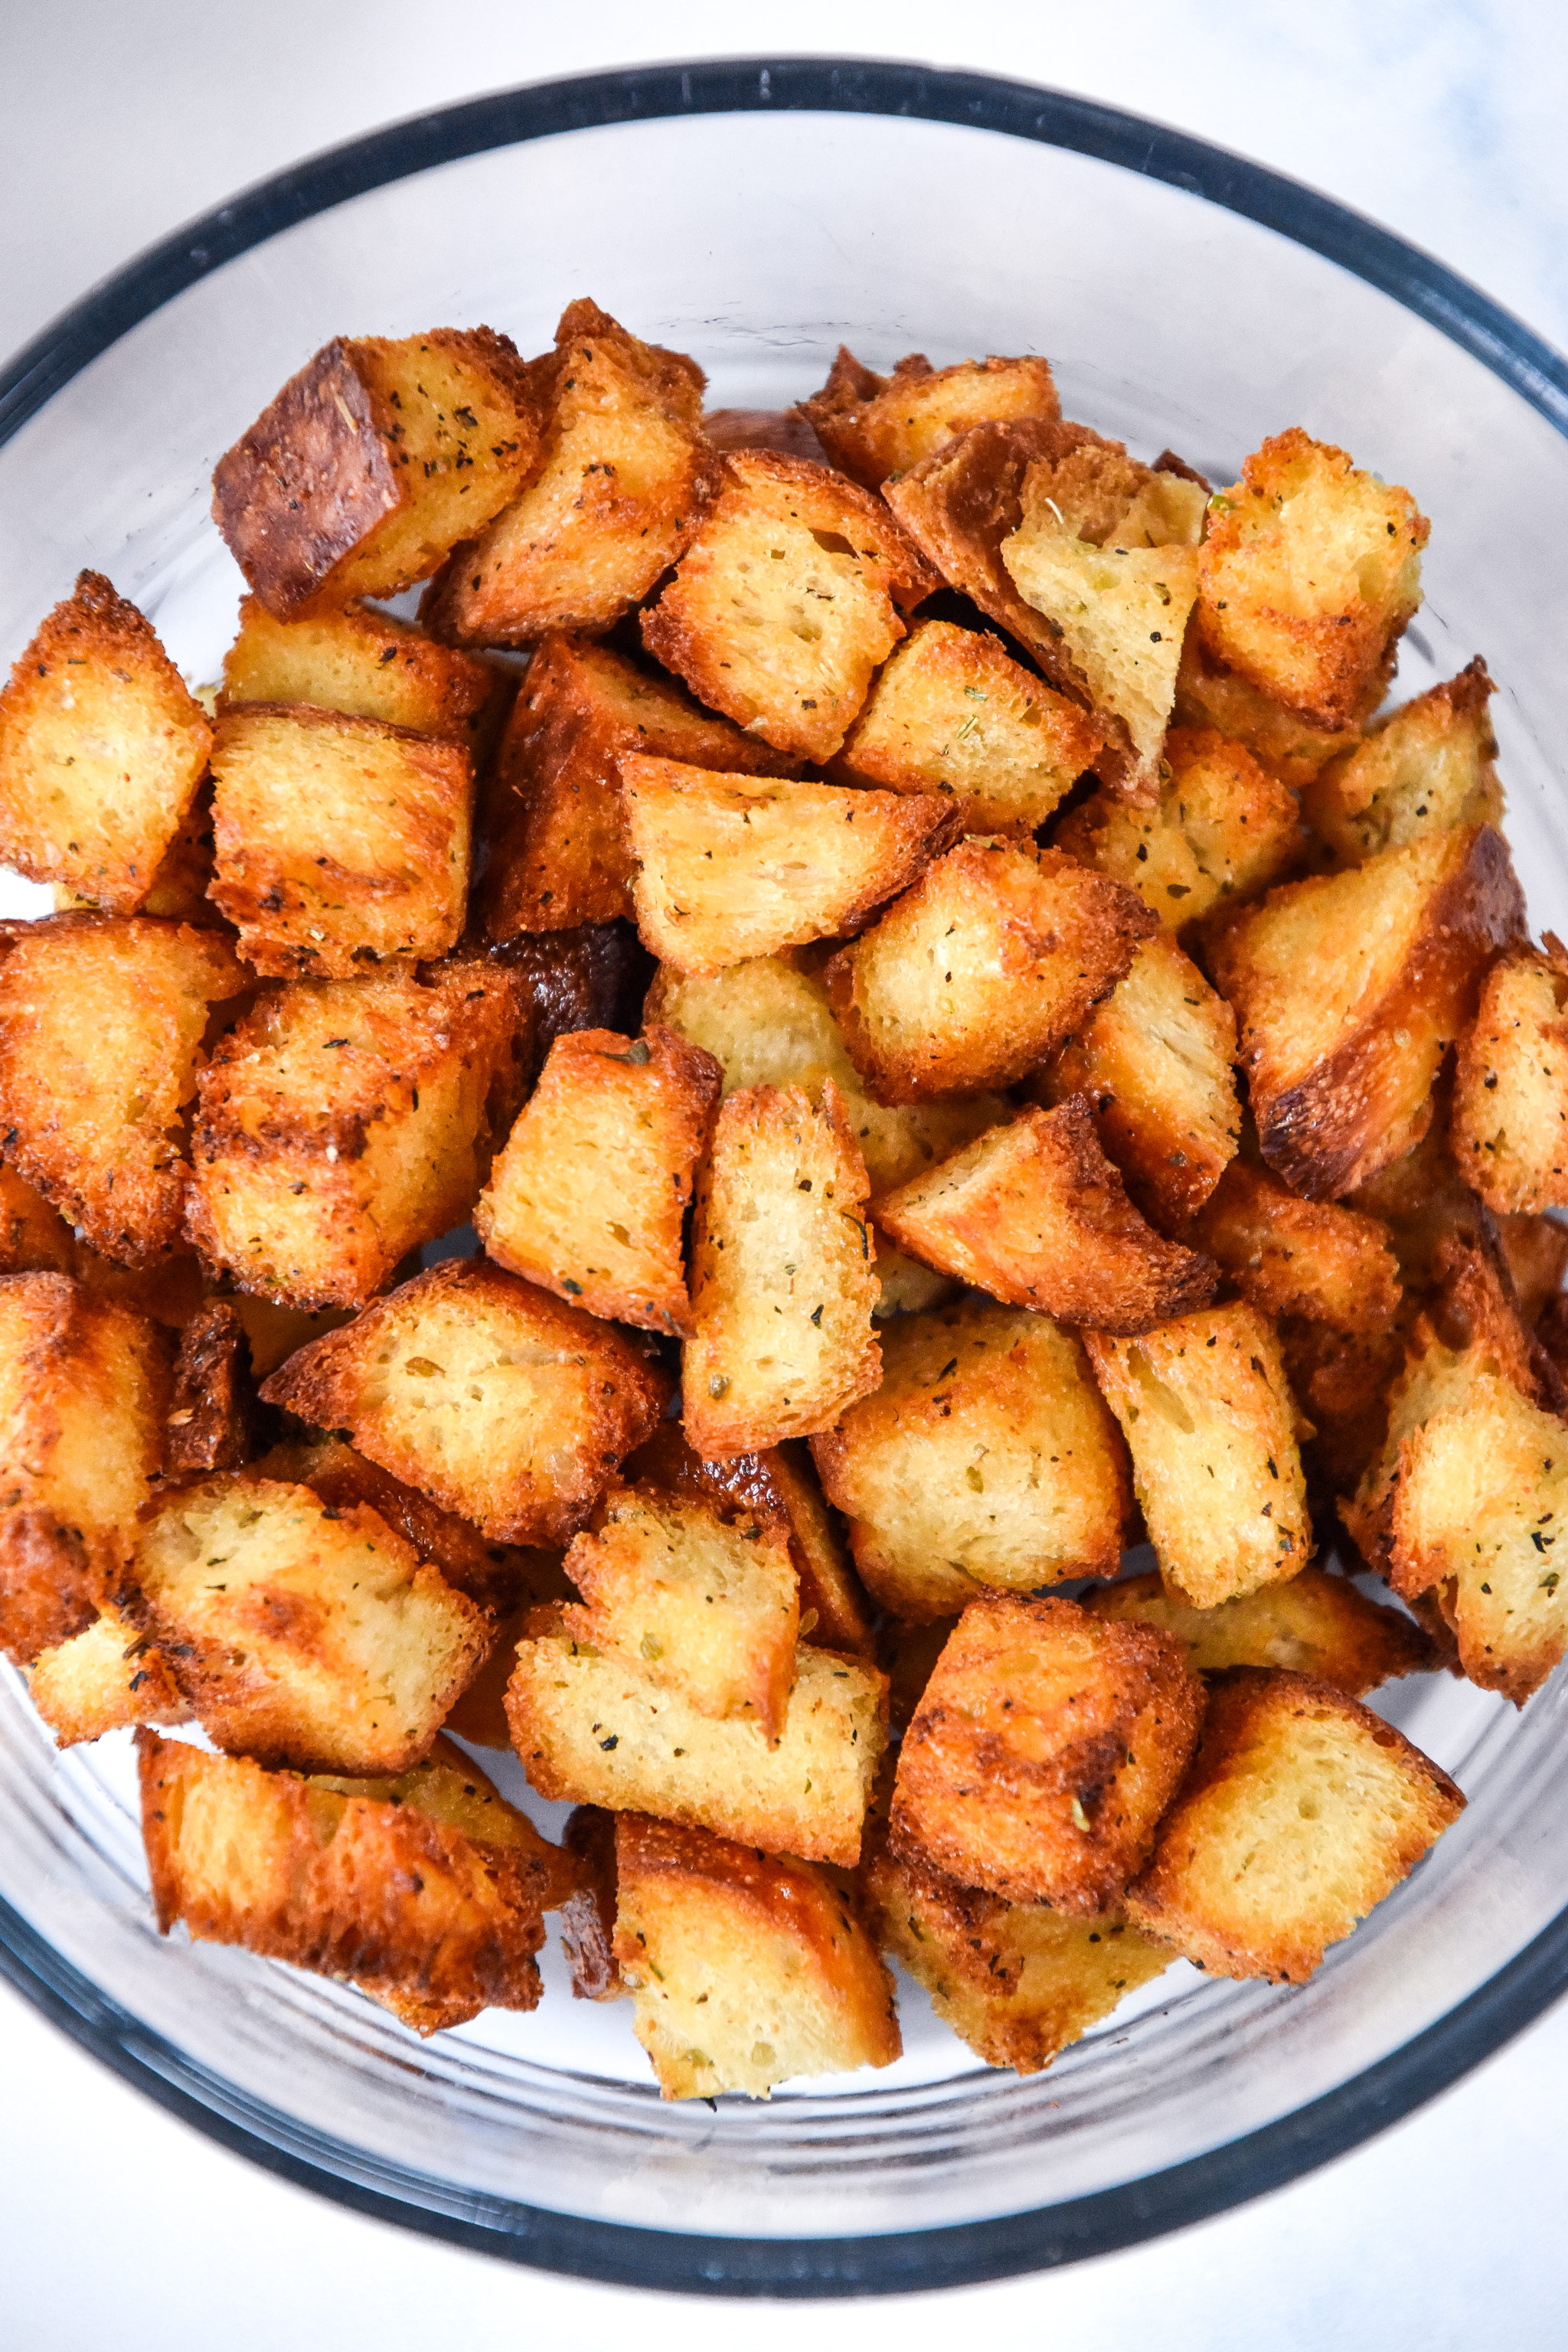 homemade croutons in a bowl for storing.